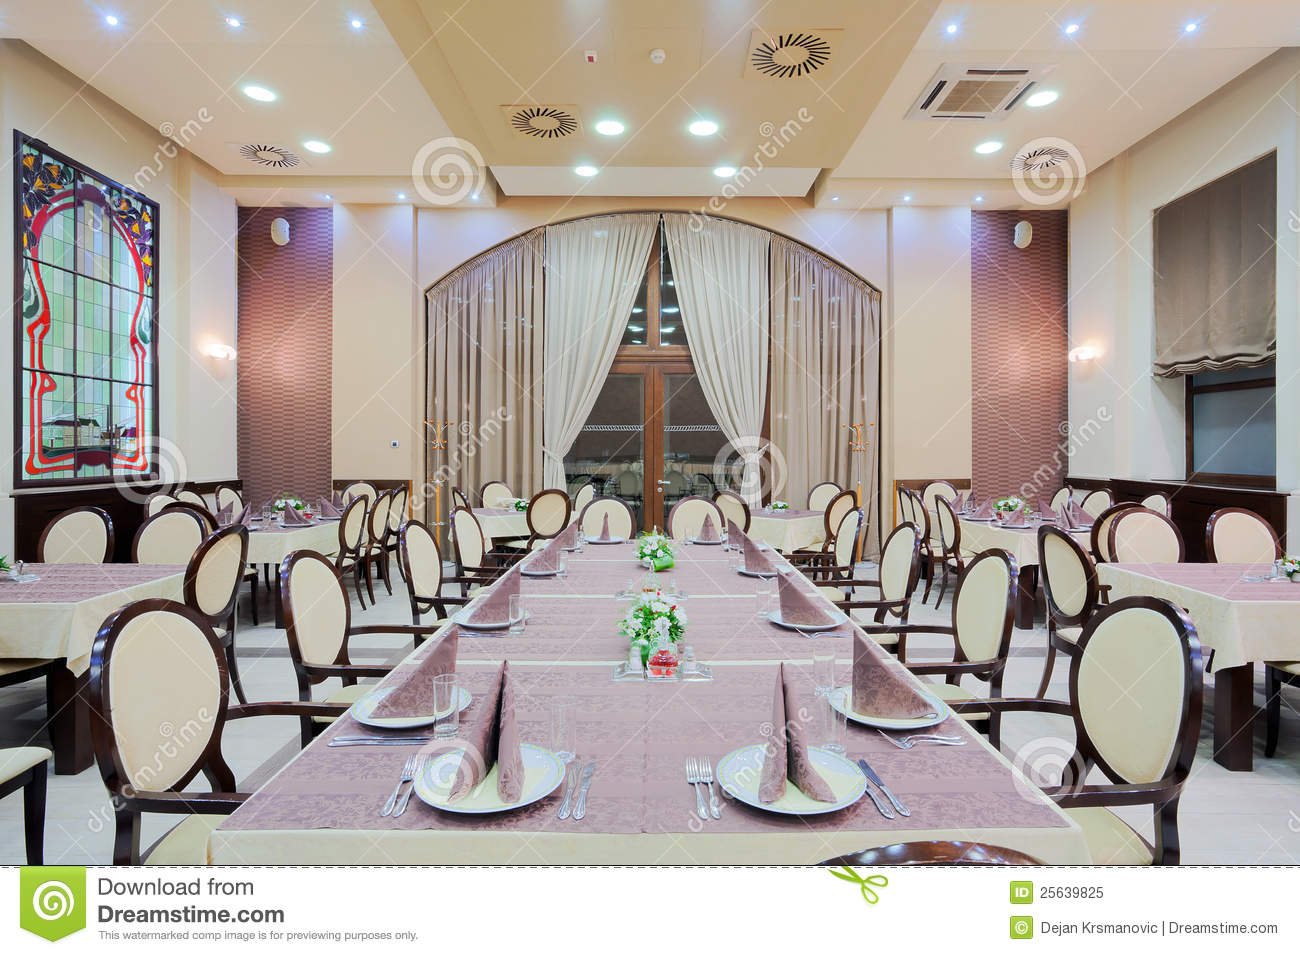 Grande table de restaurant image stock Image du plafond  25639825